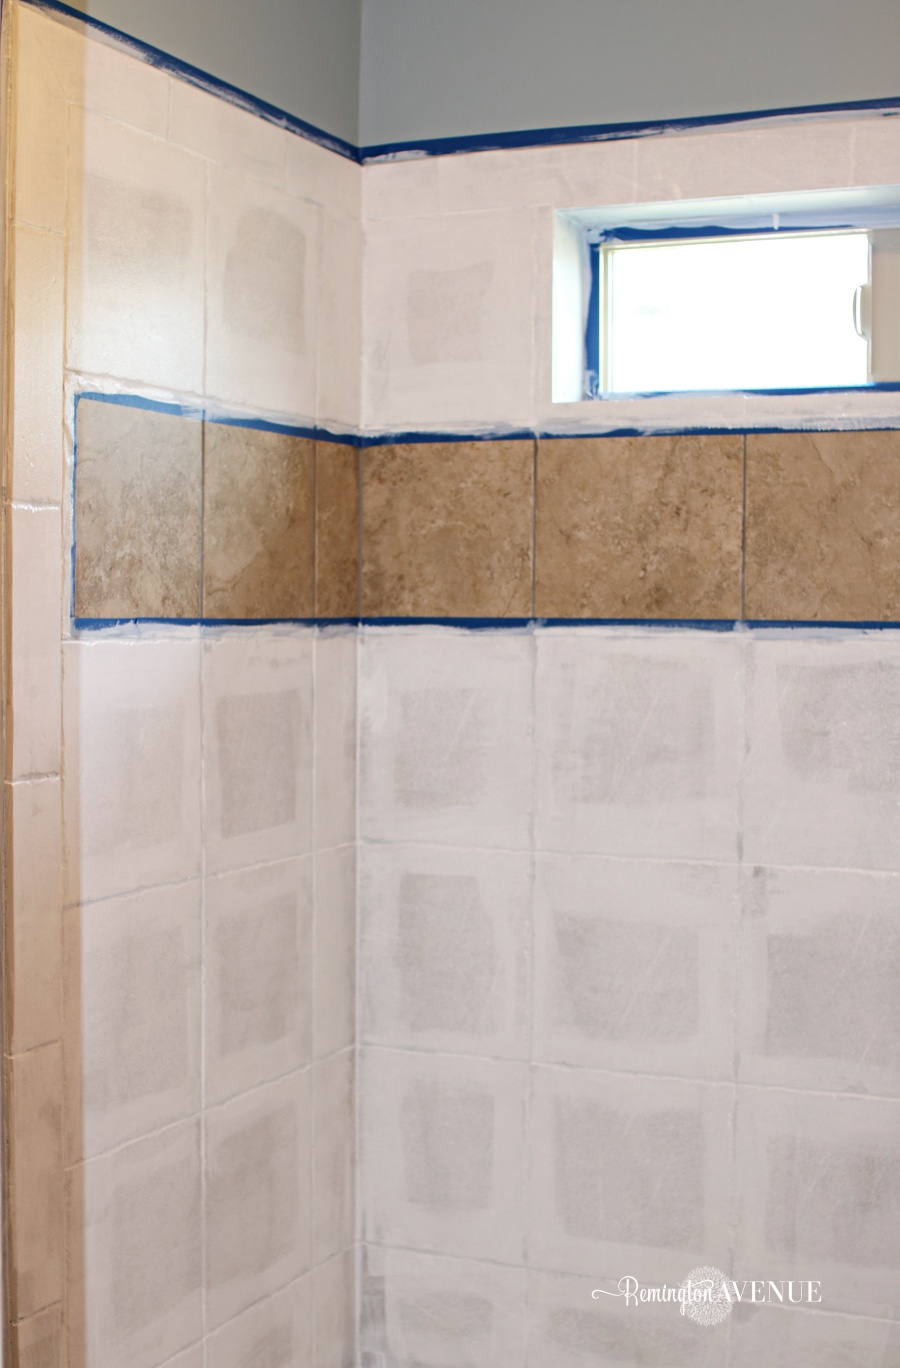 Then roll on 1 solid coat of primer on all the shower tiles. I used a low  profile synthetic roller brush, just like the directions called for on the  back of ...